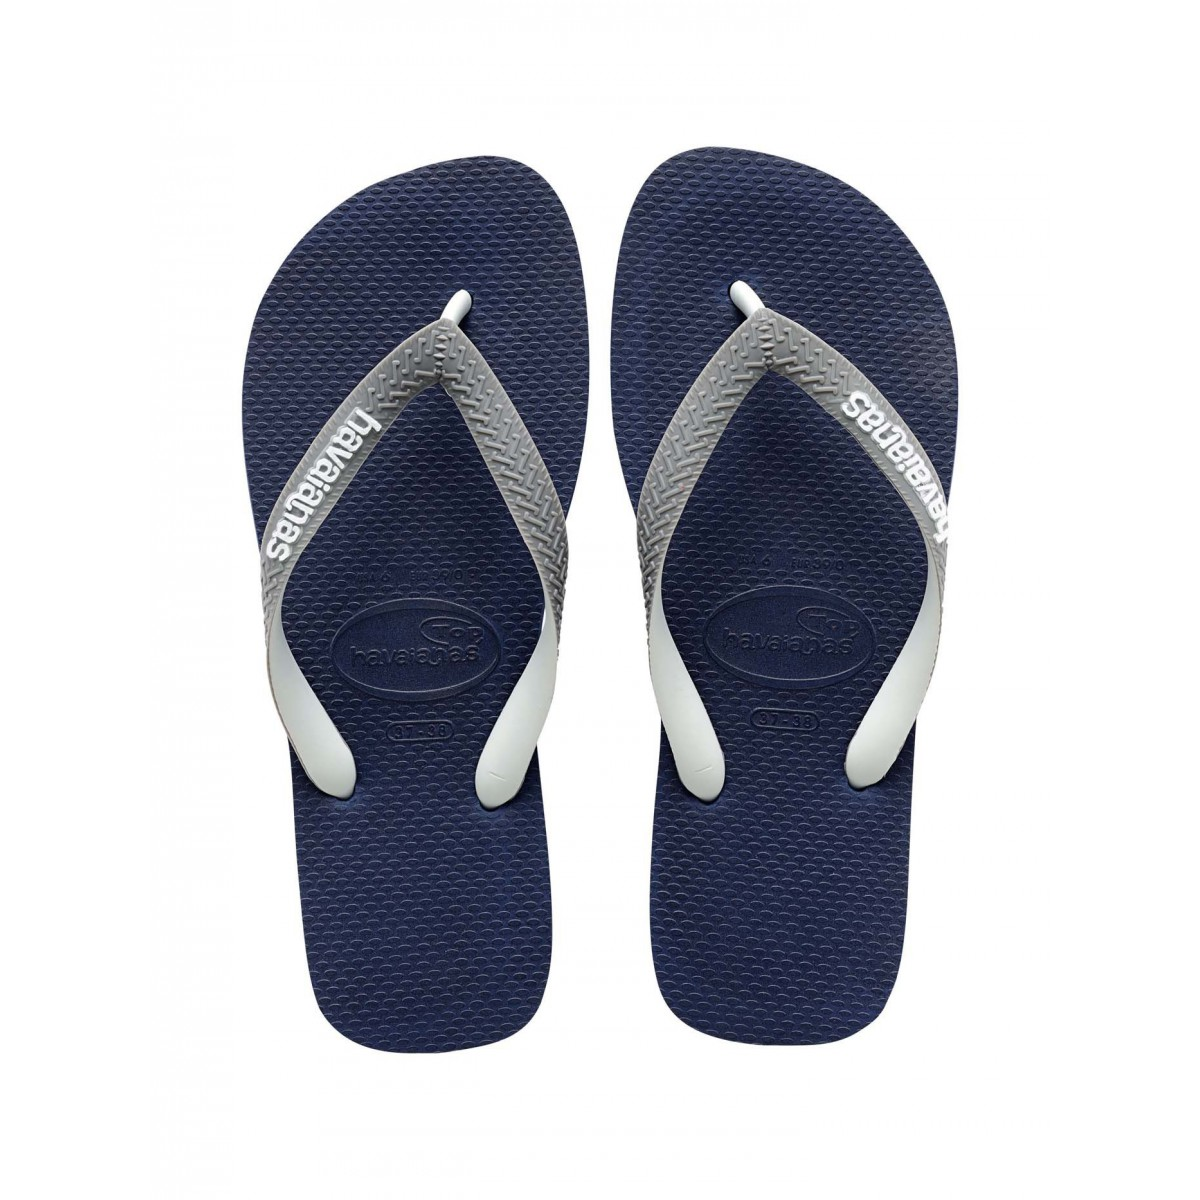 Marine Gris Top Et Mix Tong Homme Havaianas Nnv0Oywm8